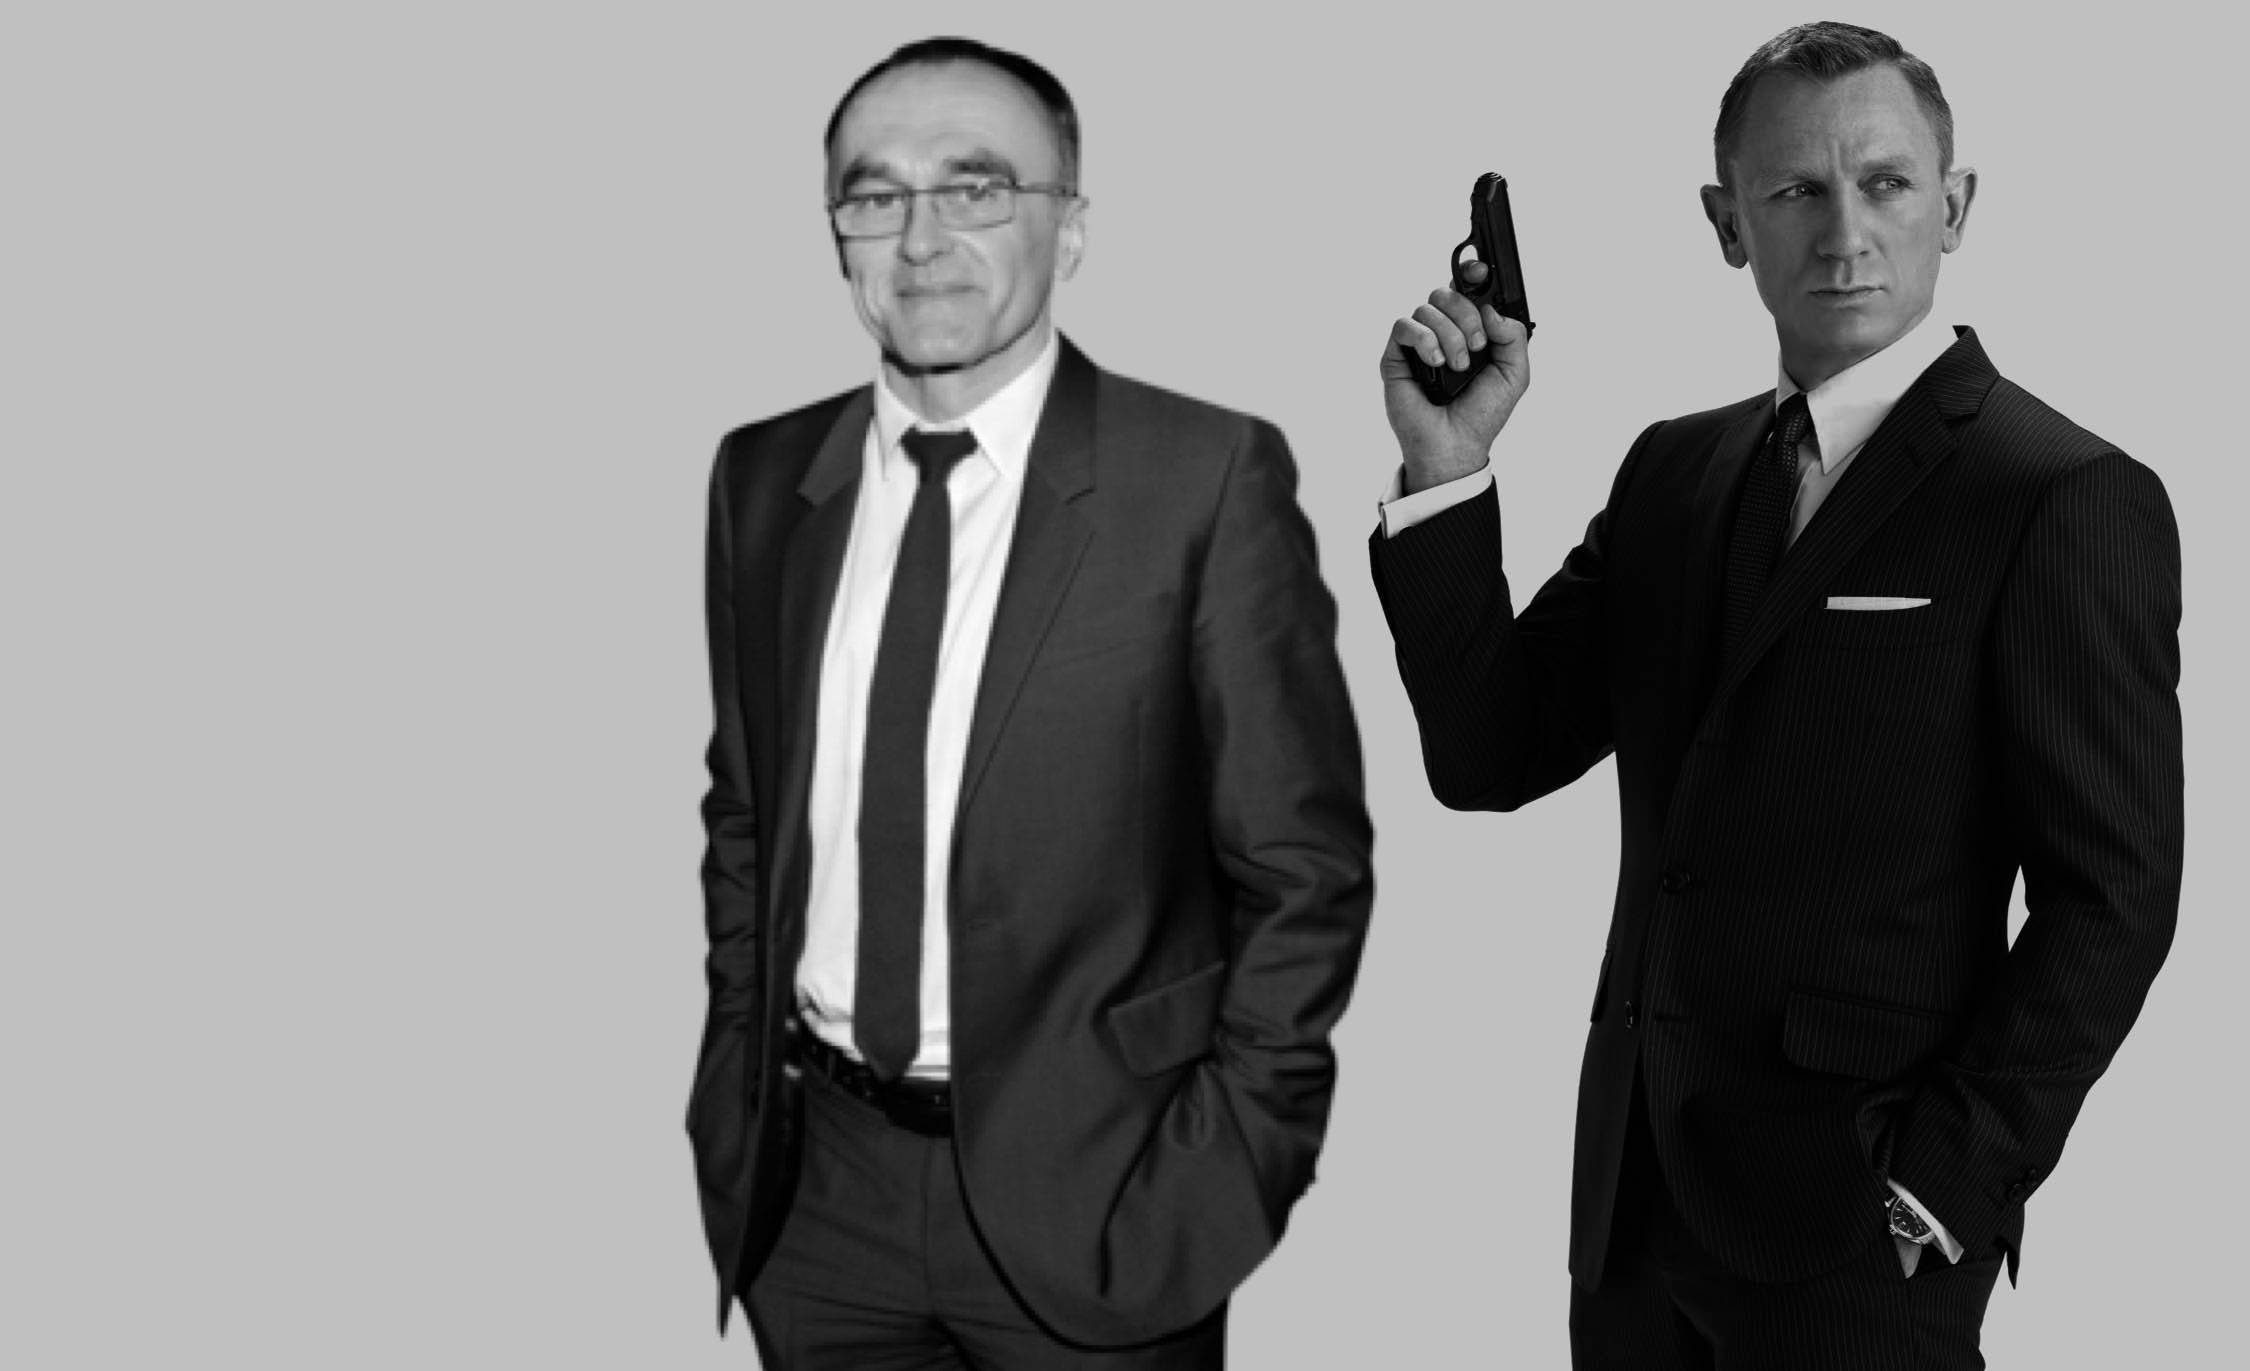 Danny Boyle Is No Longer Directing the Next James Bond Film